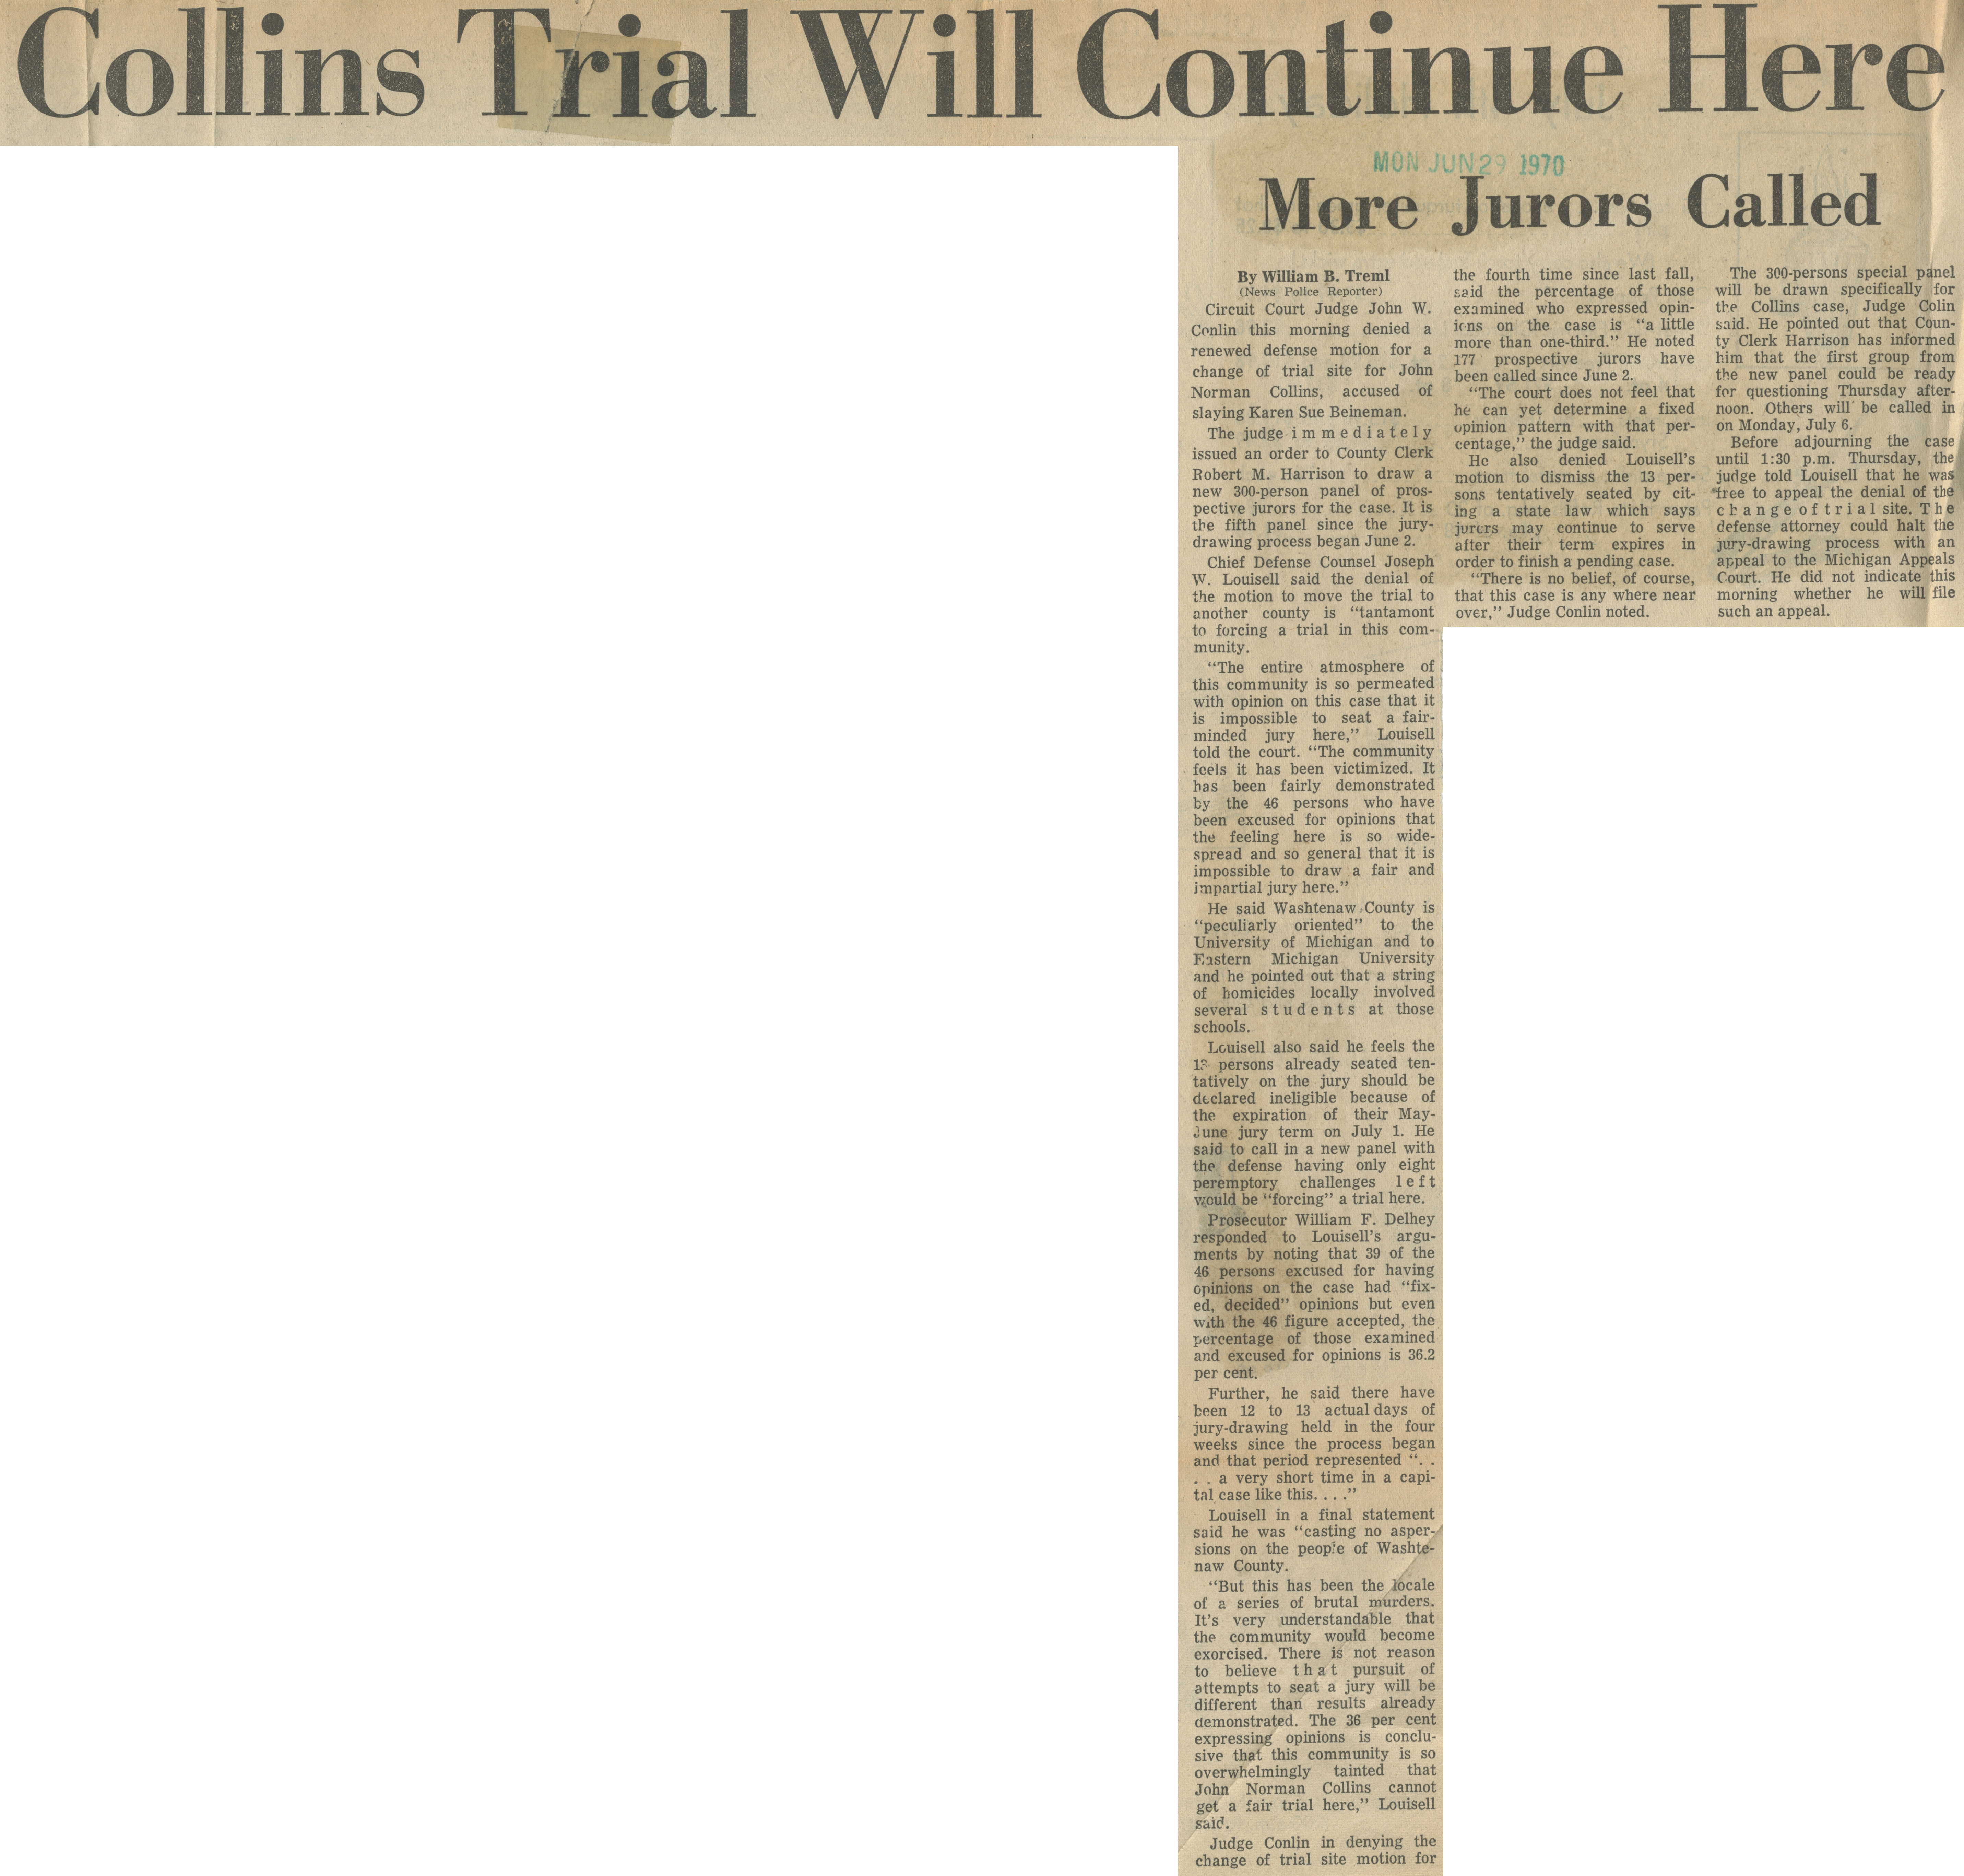 Collins Trial Will Continue Here image